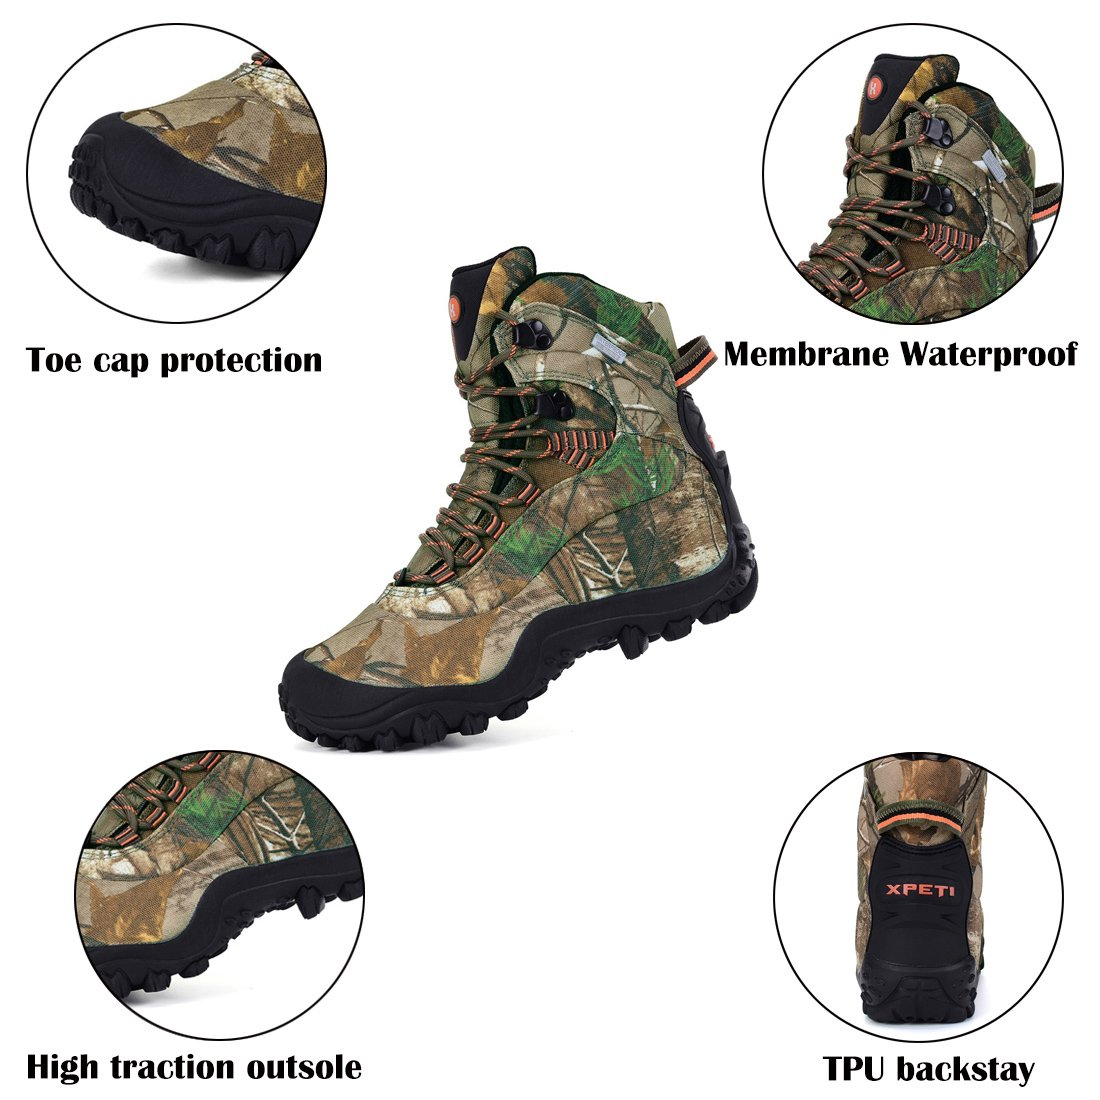 XPETI Boot Women's Waterproof Mid High-Top Hiking Outdoor Boot XPETI B079DKYJ4B 9 B(M) US|Camouflage 31a6c4